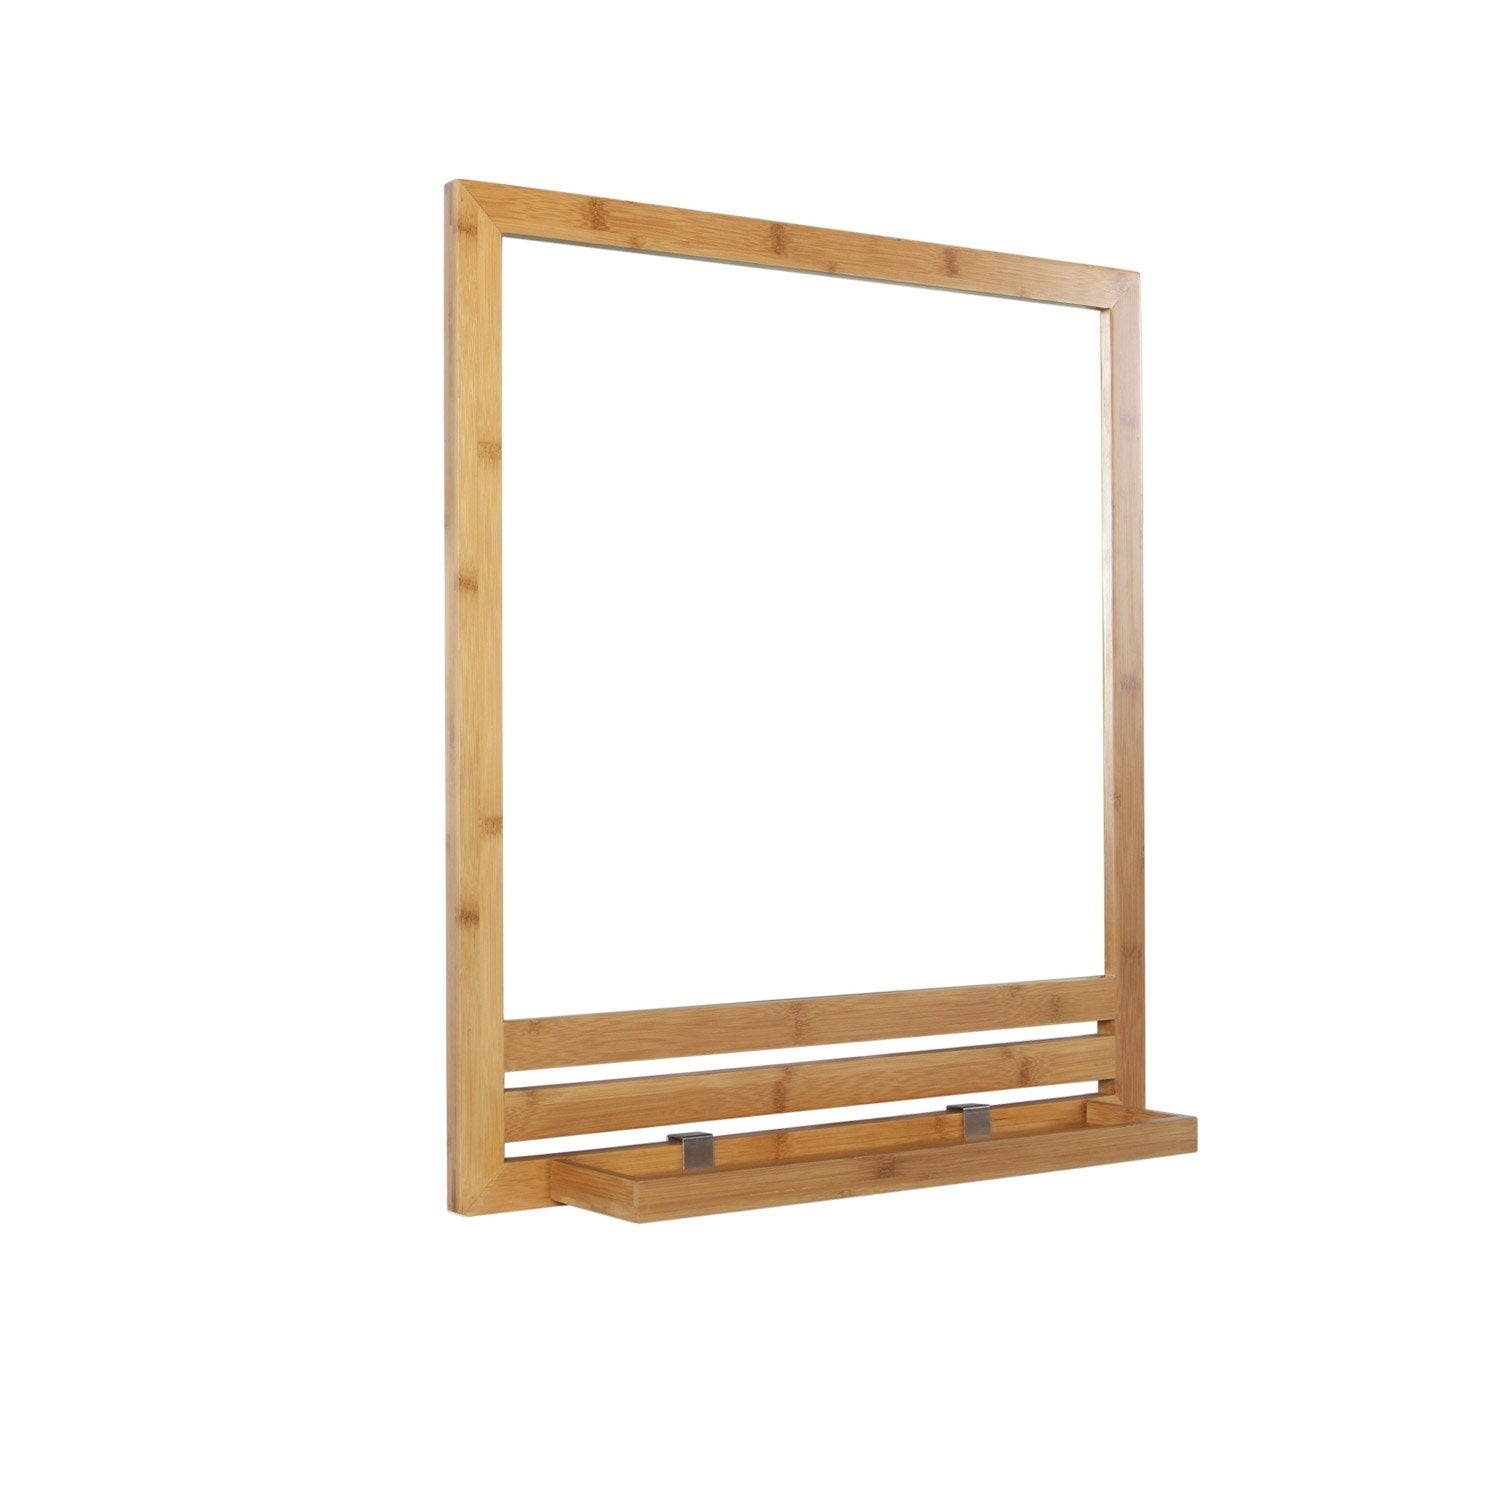 Miroir avec tablette natural leroy merlin - Tablette wenge leroy merlin ...